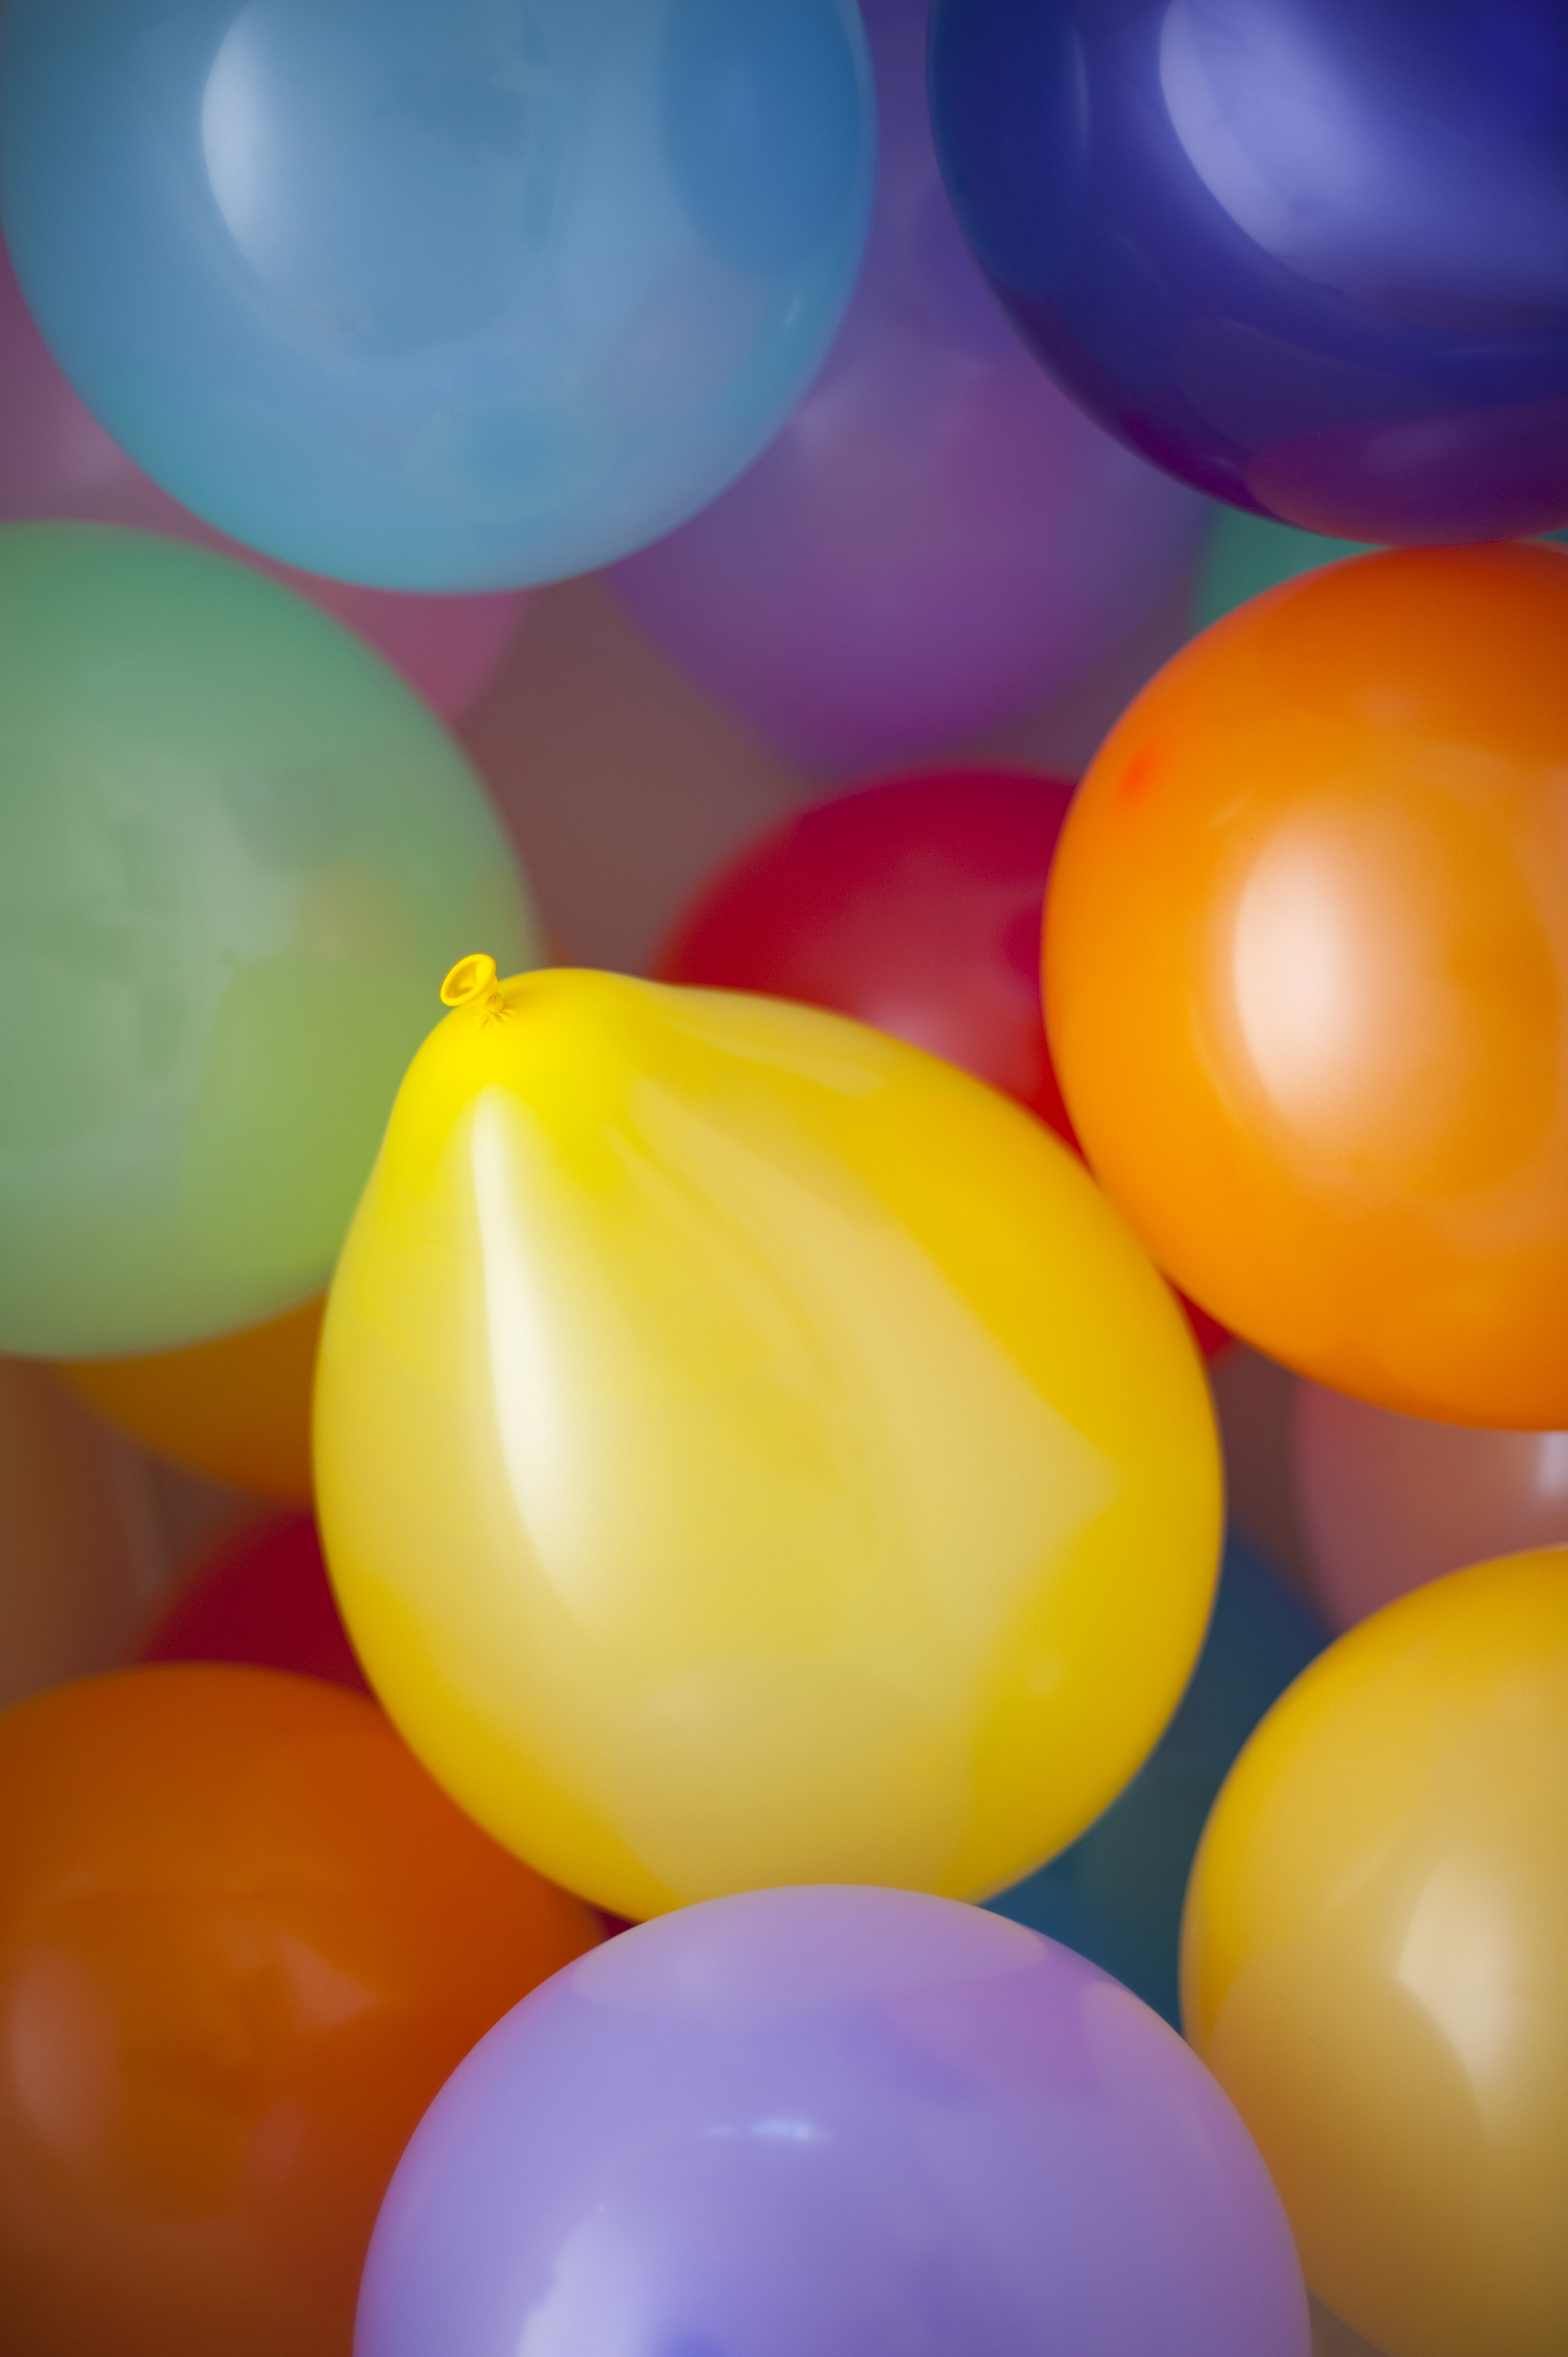 Free Stock Photo 3833 Colored Balloons Freeimageslive